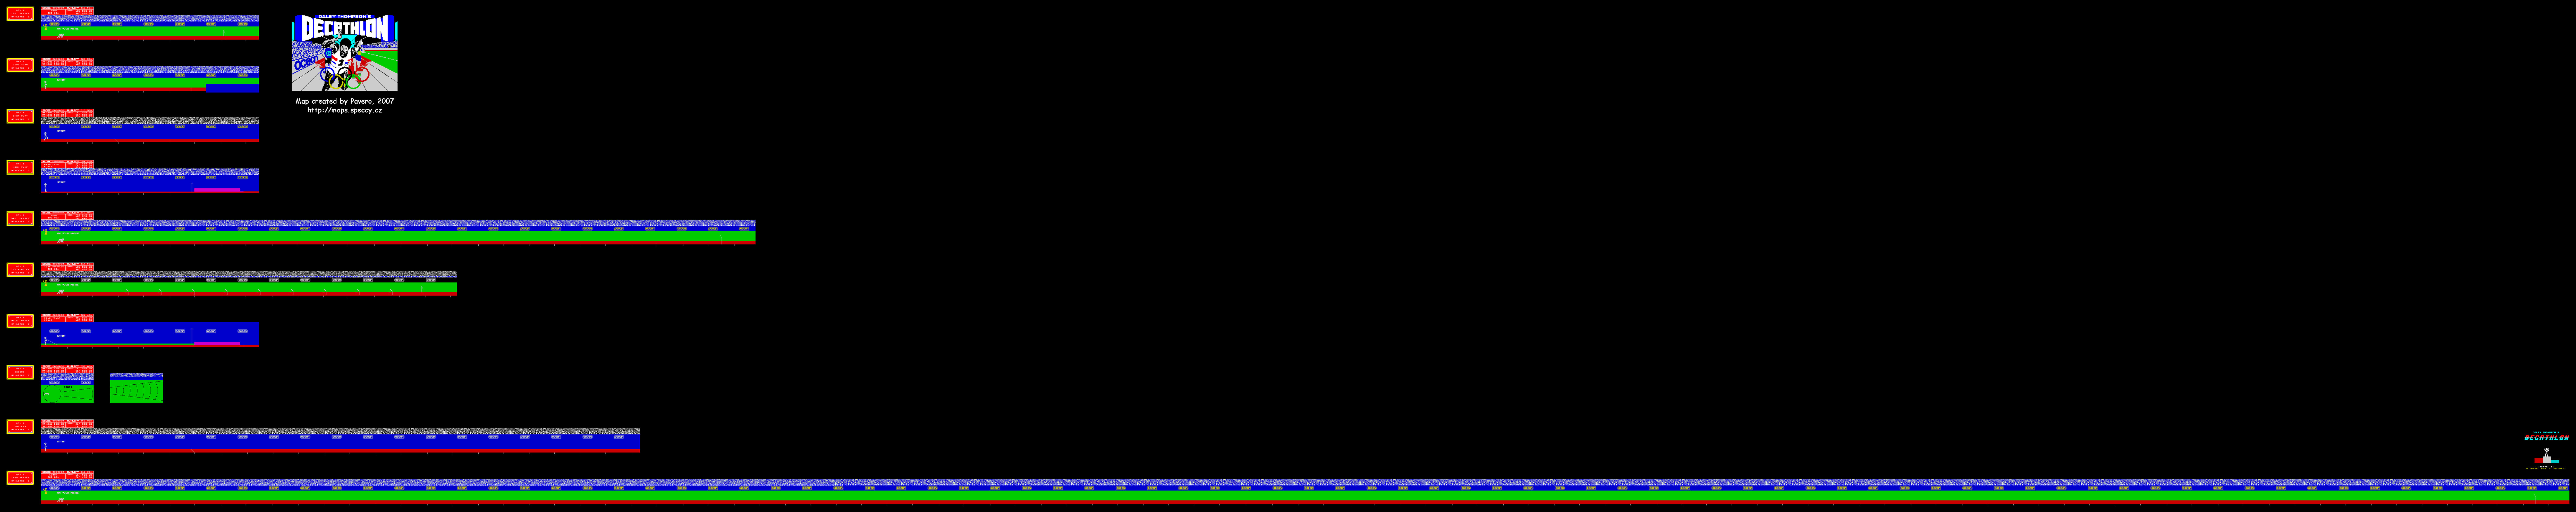 Daley Thompson's Decathlon Game Map